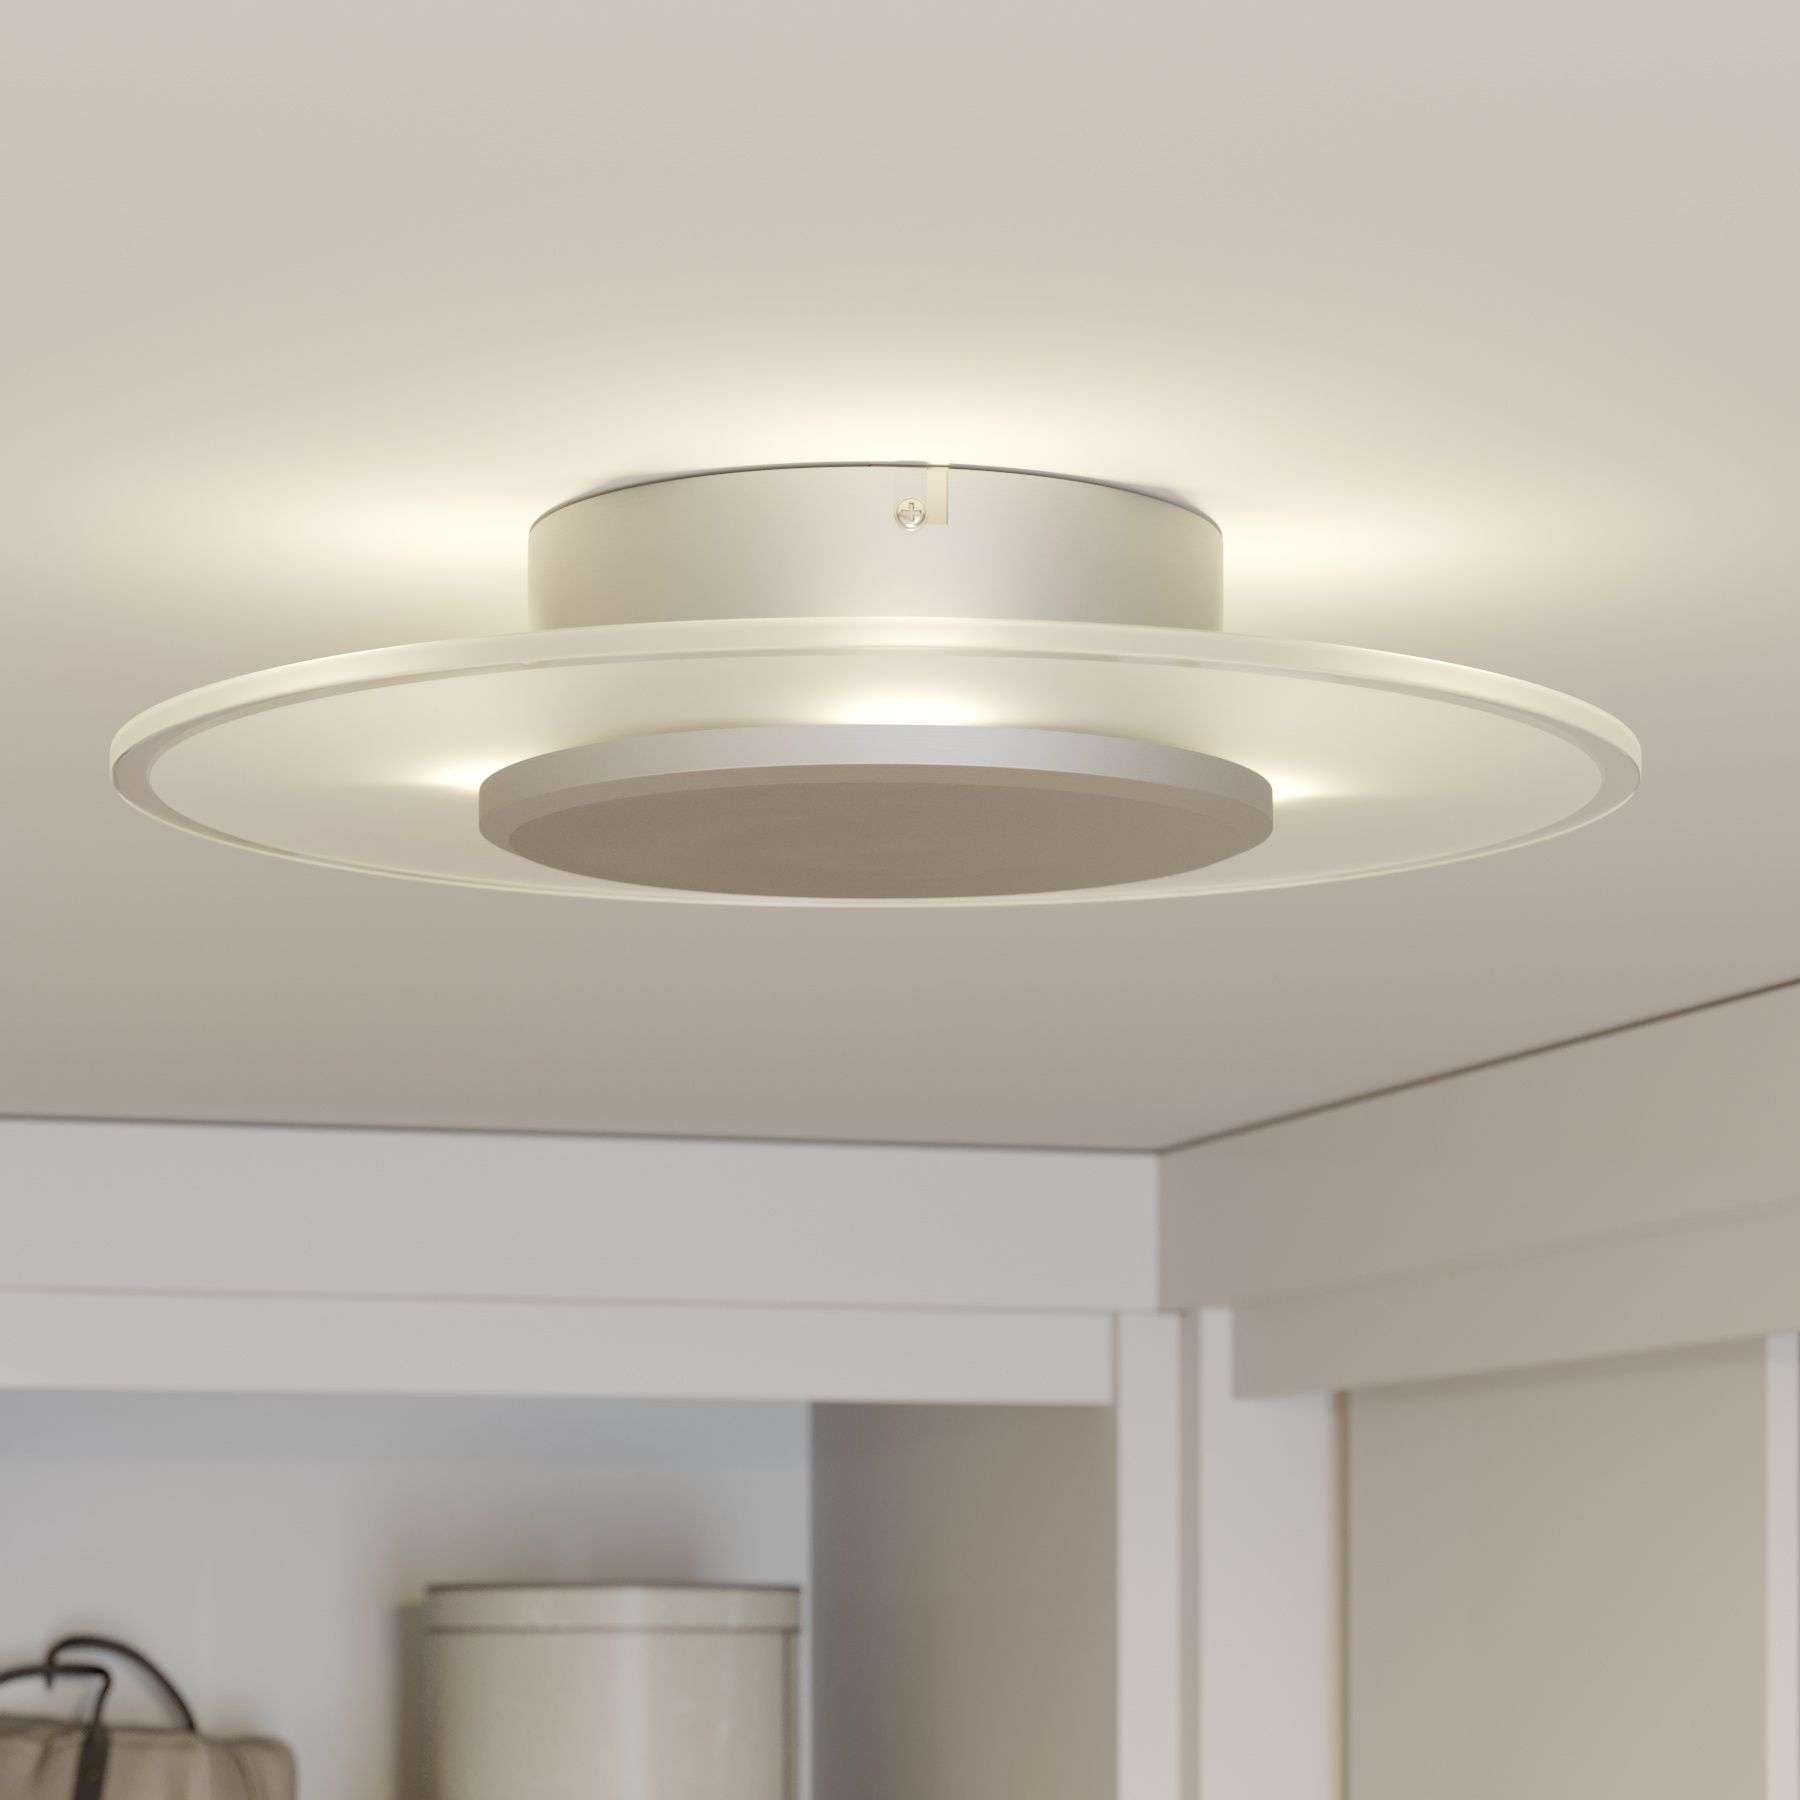 Dora led ceiling light dimmable lights dora led ceiling light dimmable aloadofball